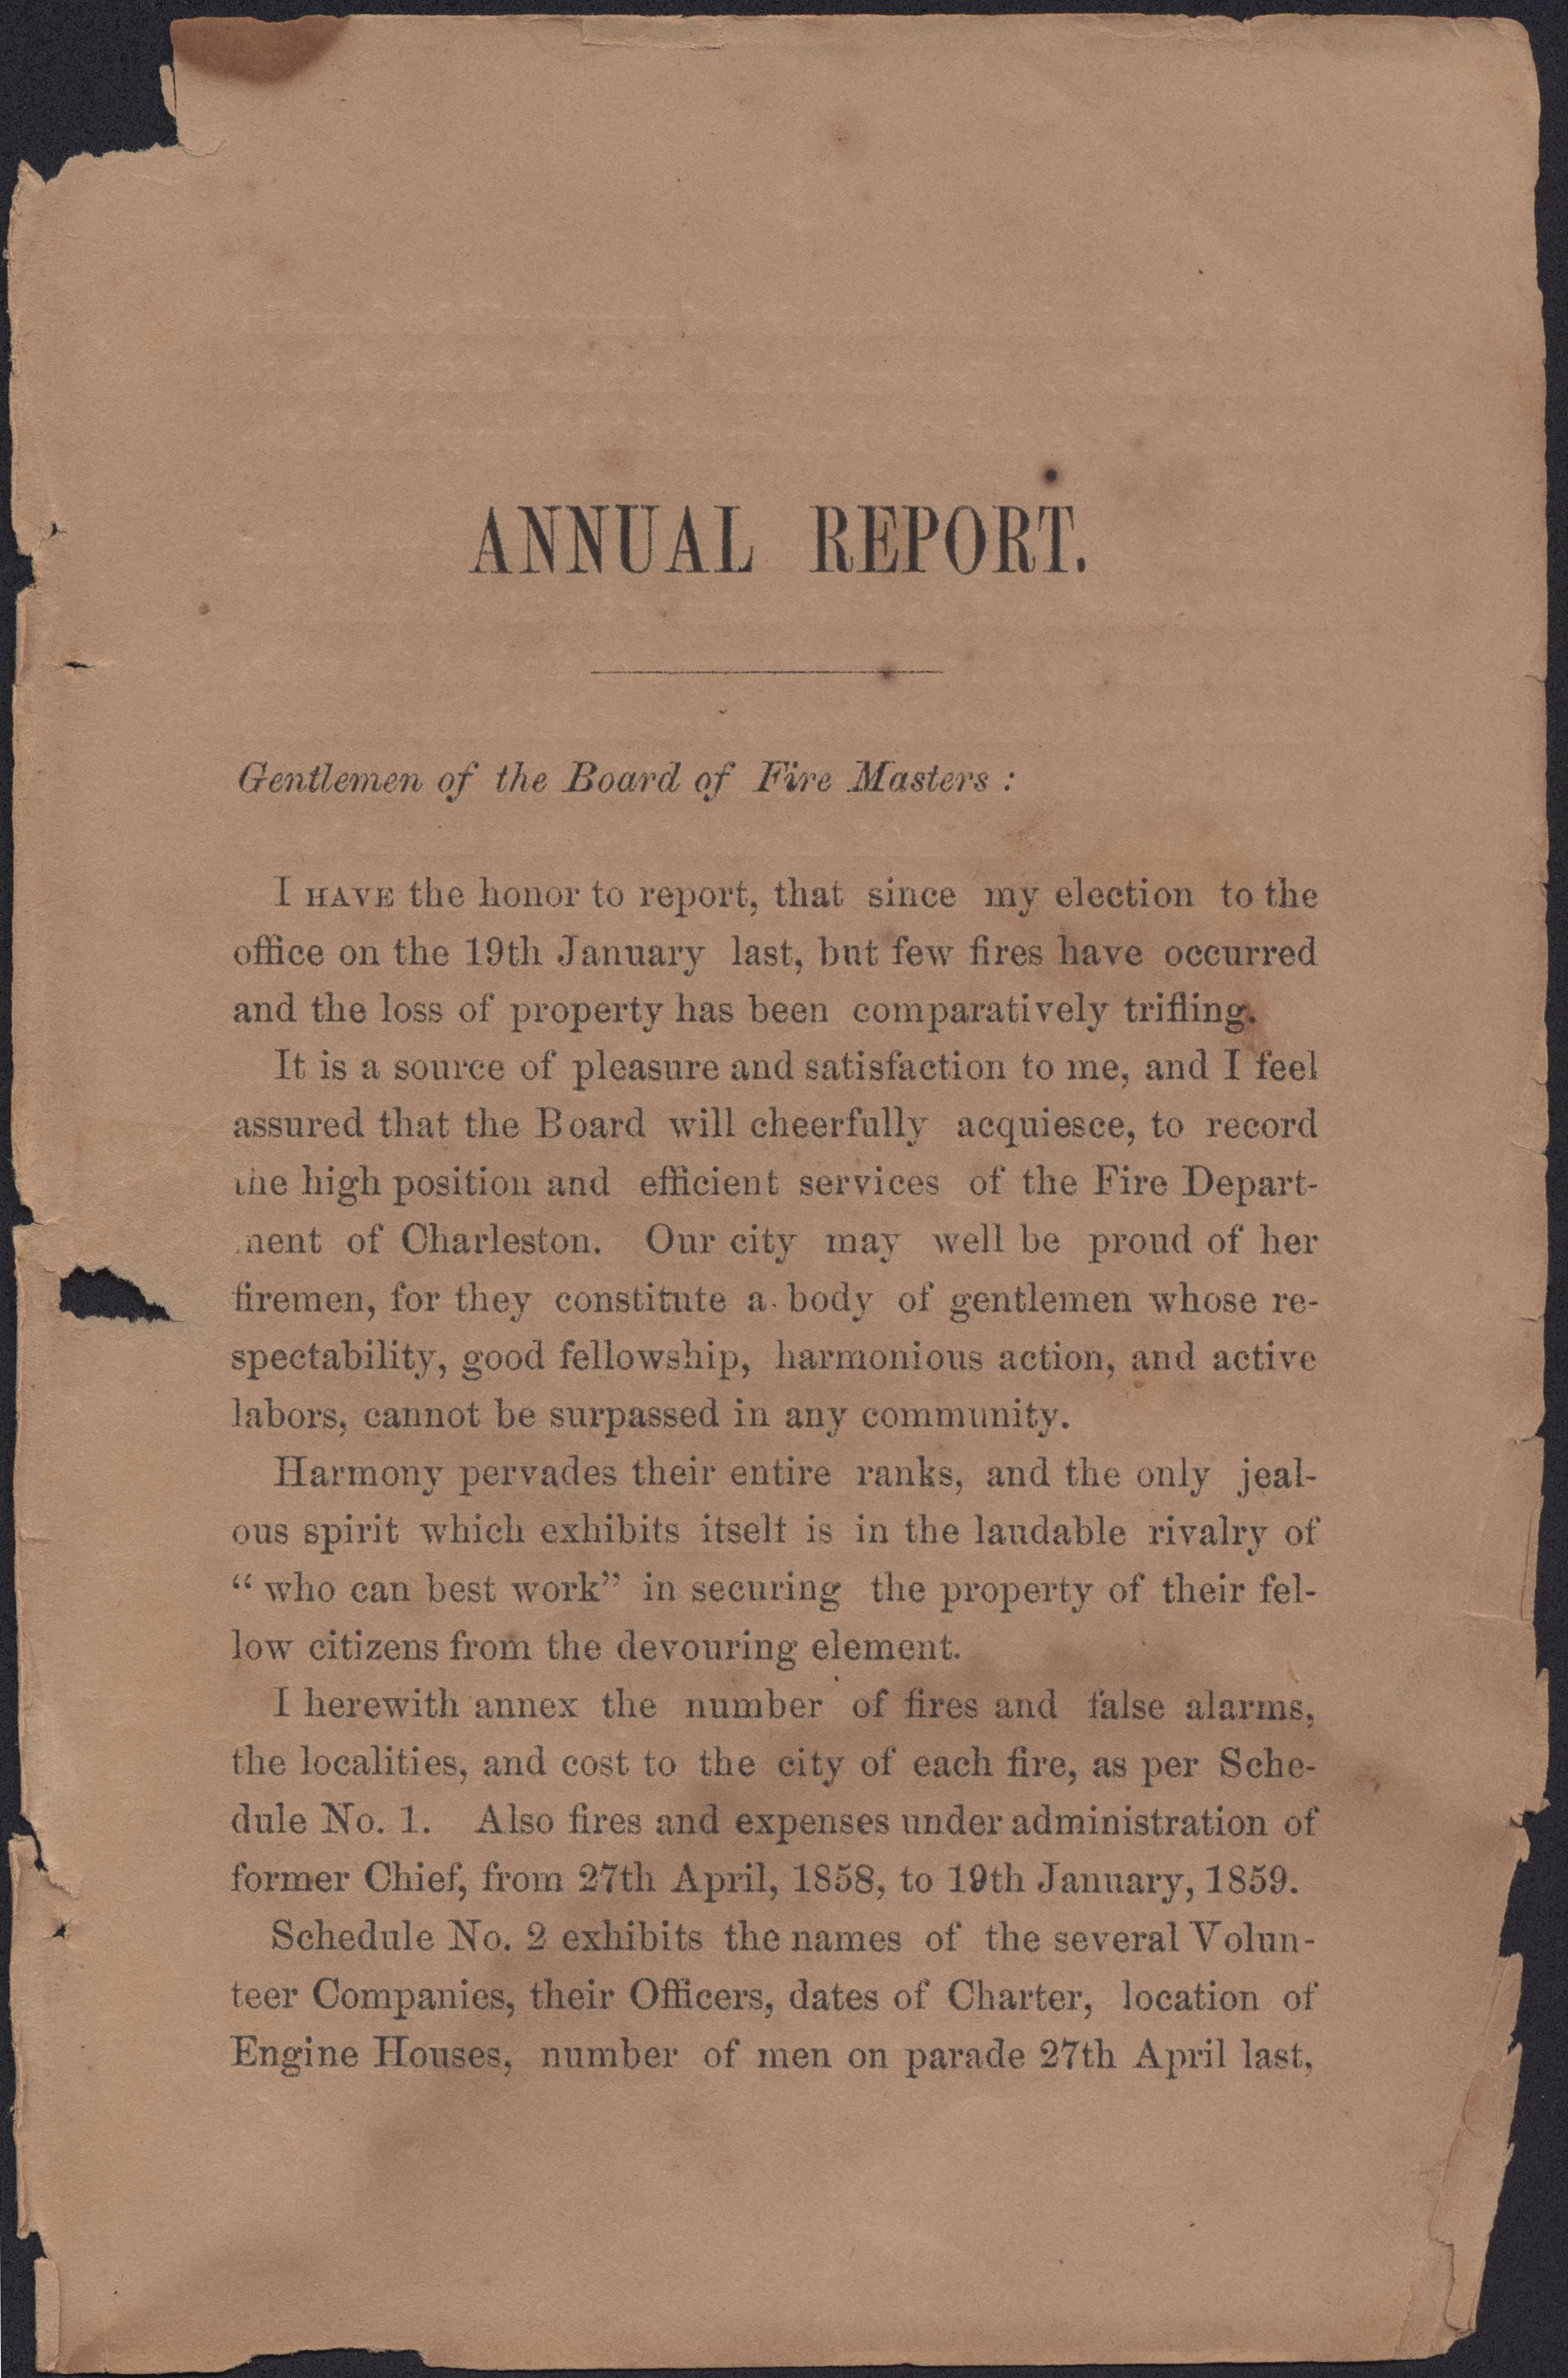 Annual Report of the Chief of the Fire Department of the City of Charleston, page 3